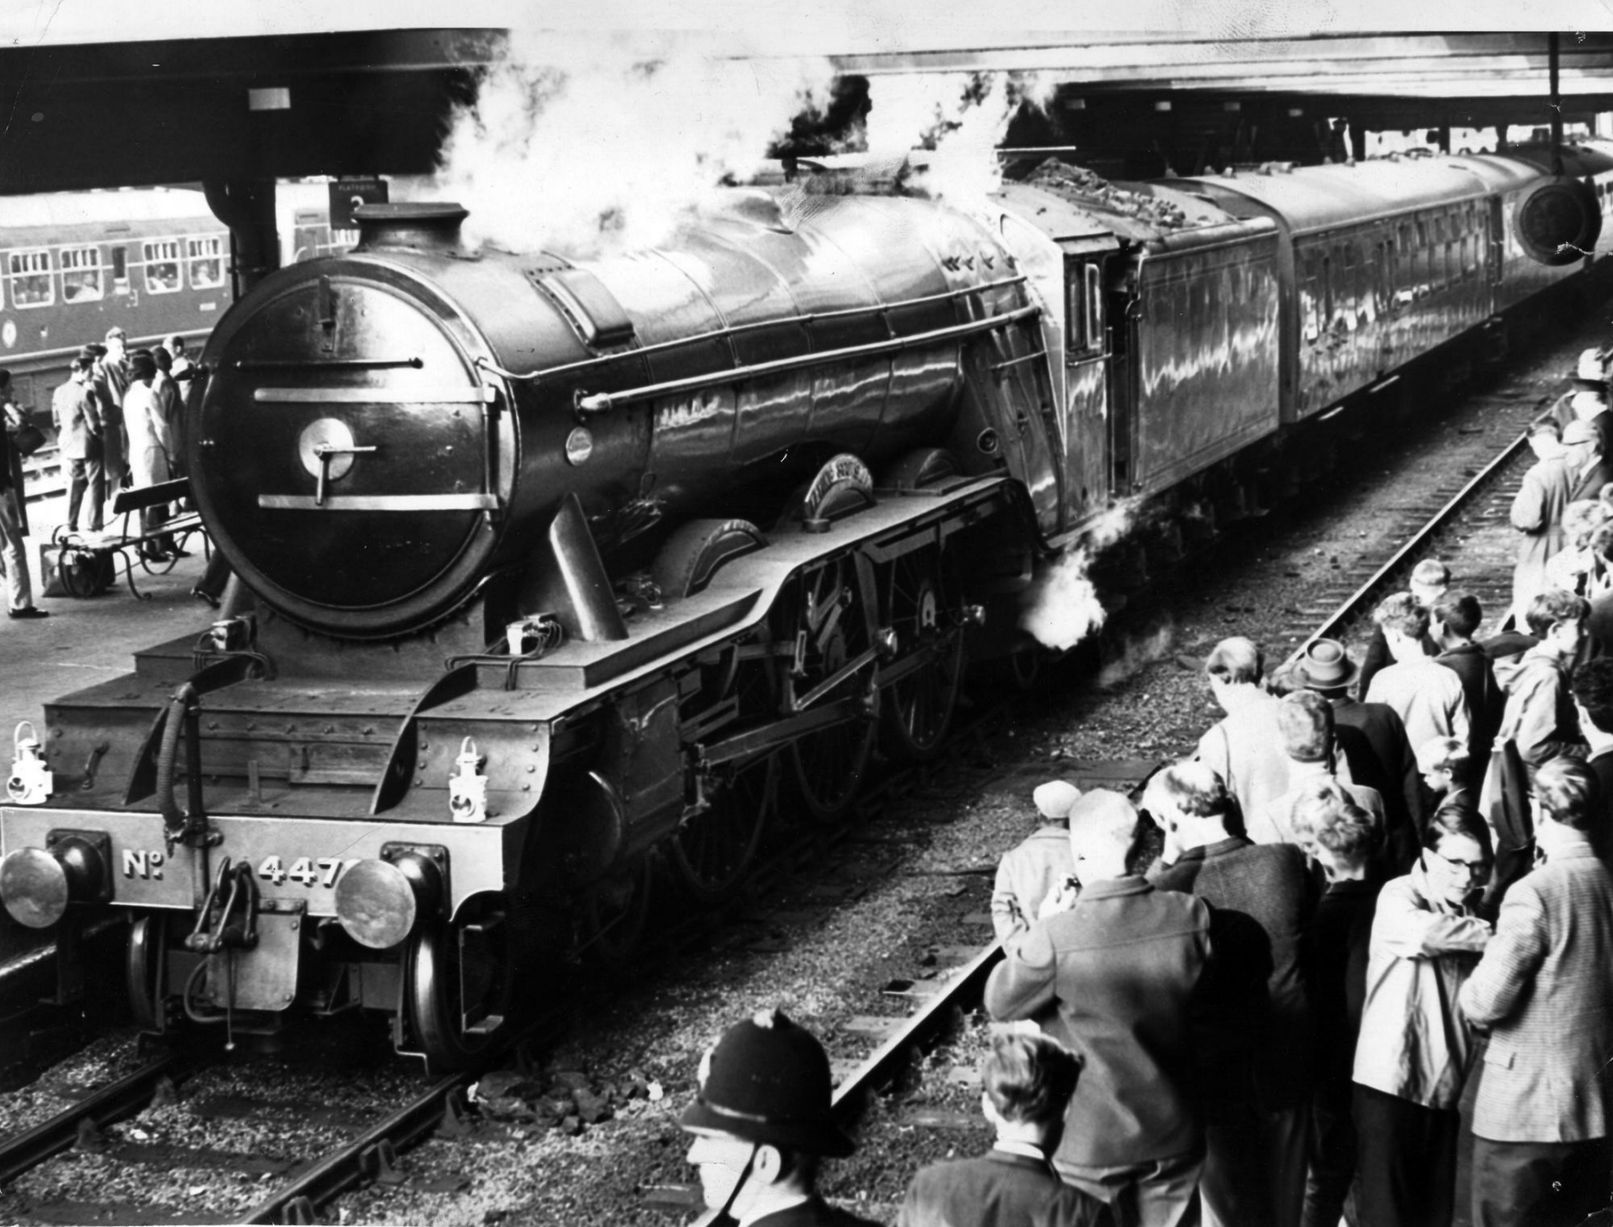 Lner Class A3 Pacific Locomotive No 4472 Flying Scotsman Pictured At Birmingham New Street Cheered By Eager Crowd Of Train Enthusiasts 1964